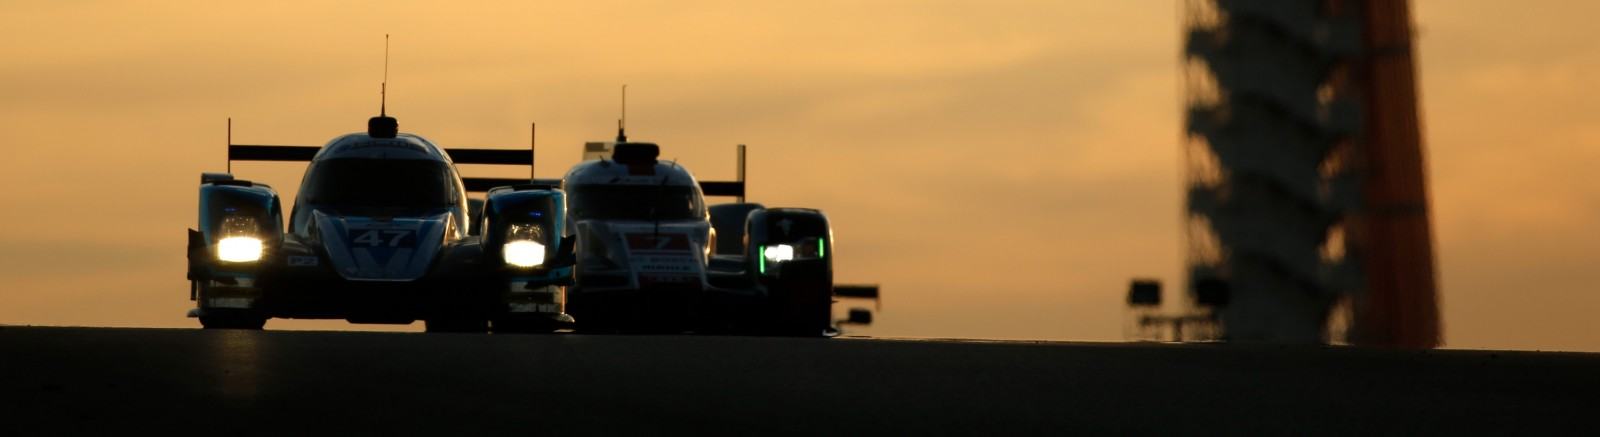 6 Hours of Circuit of the Americas